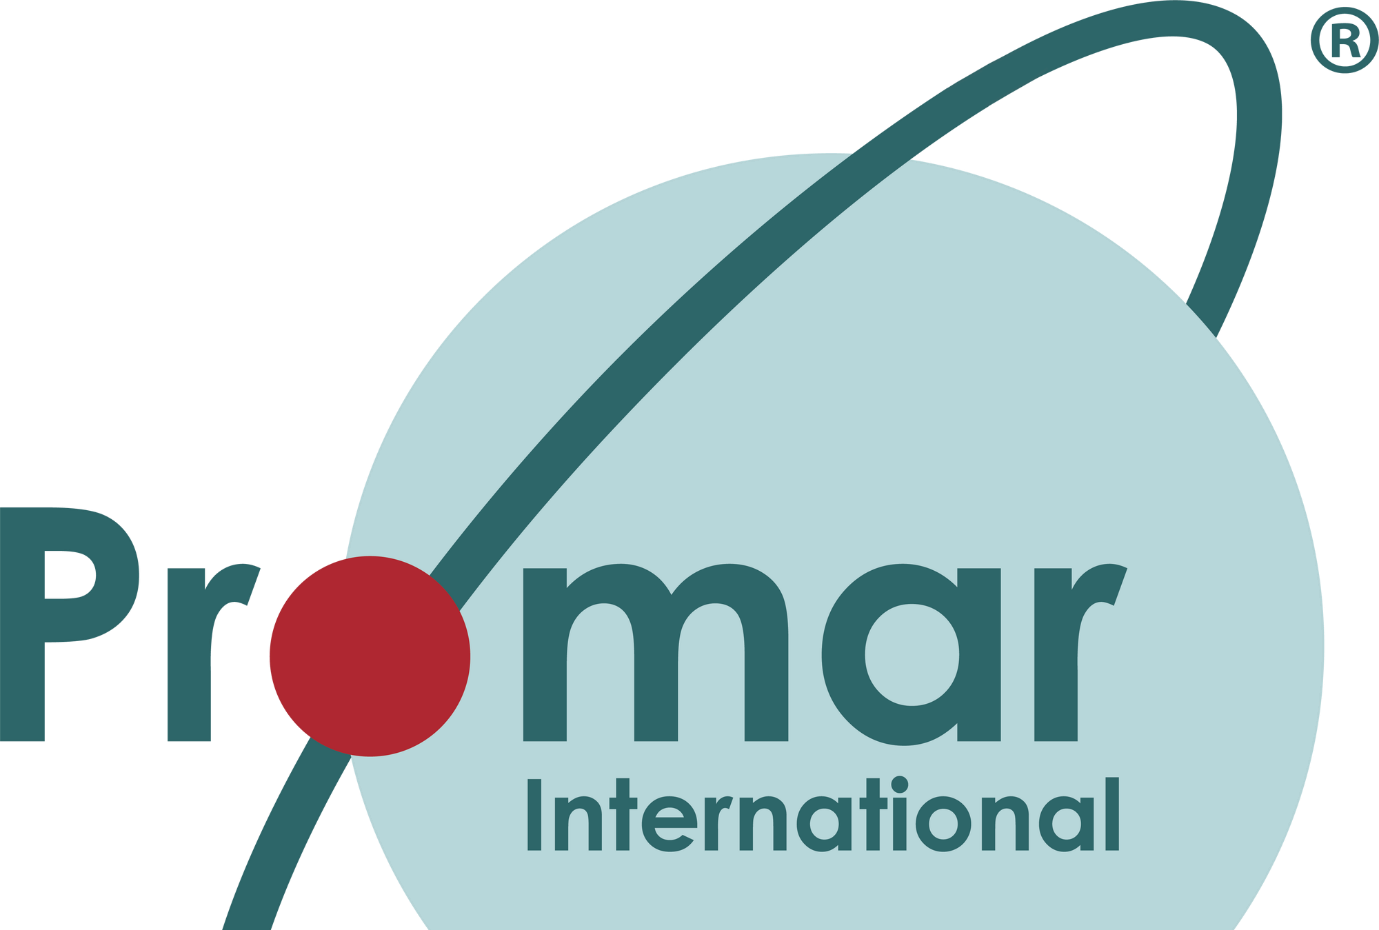 Promar International